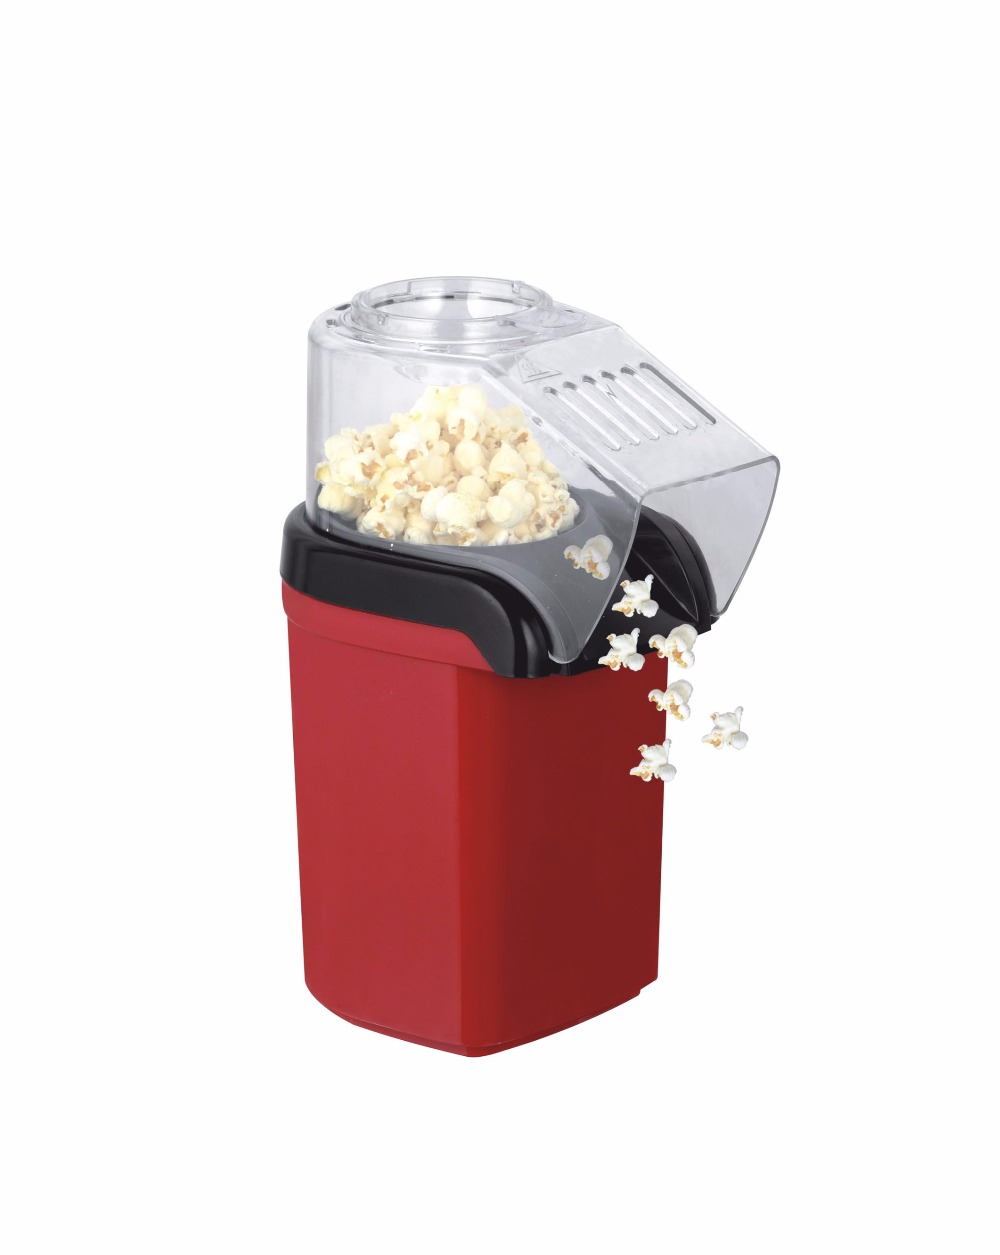 Small home use Electric mini popcorn machine,popcorn maker making machineSmall home use Electric mini popcorn machine,popcorn maker making machine